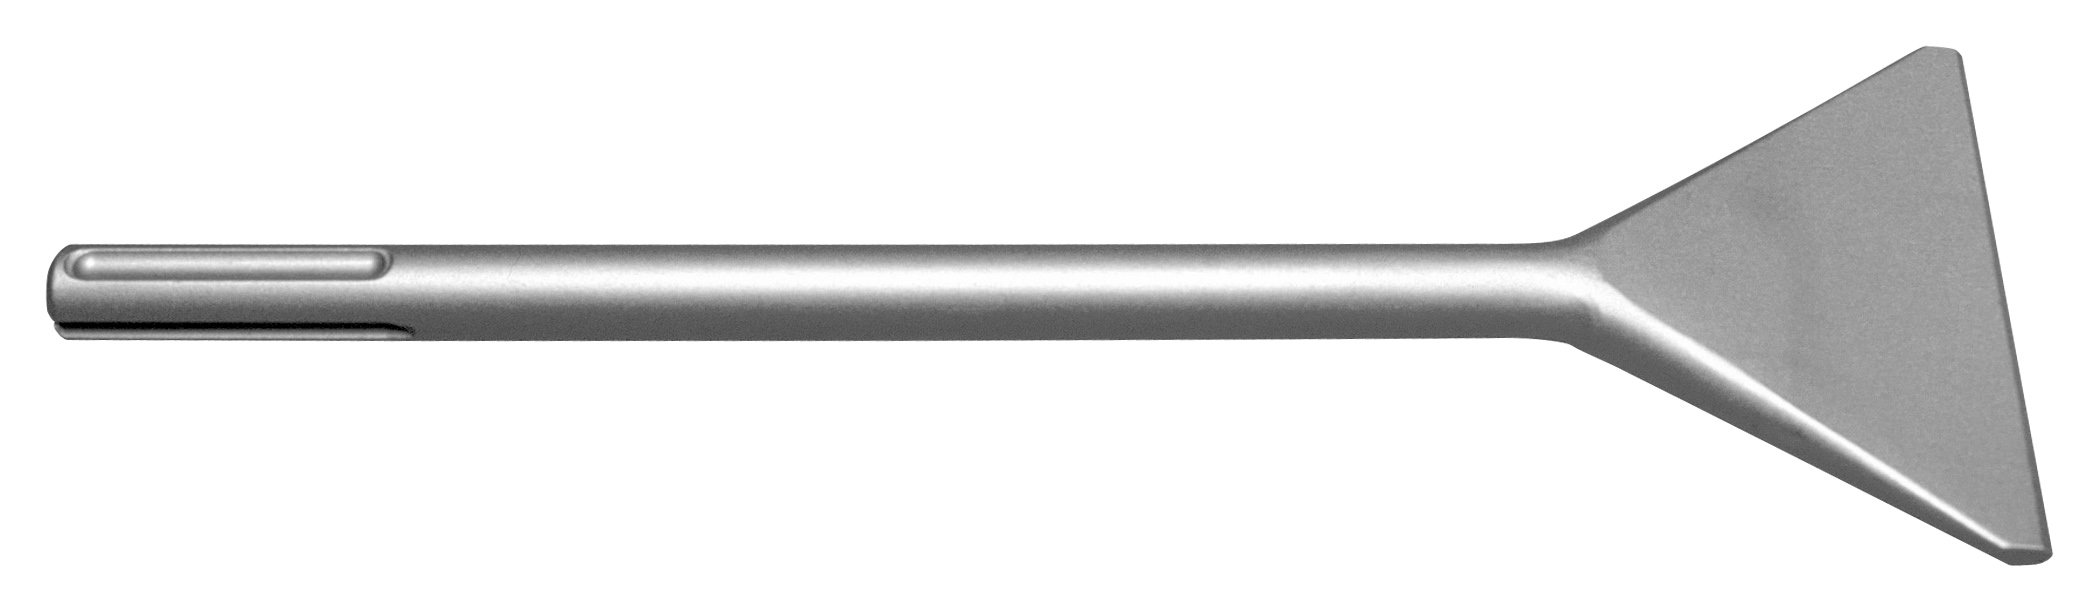 Champion Chisel, 12-Inch Long, 4-Inch Wide Jumbo SDS-MAX Flat Chisel, Double Beveled Working Edge by Champion Chisel Works (Image #1)